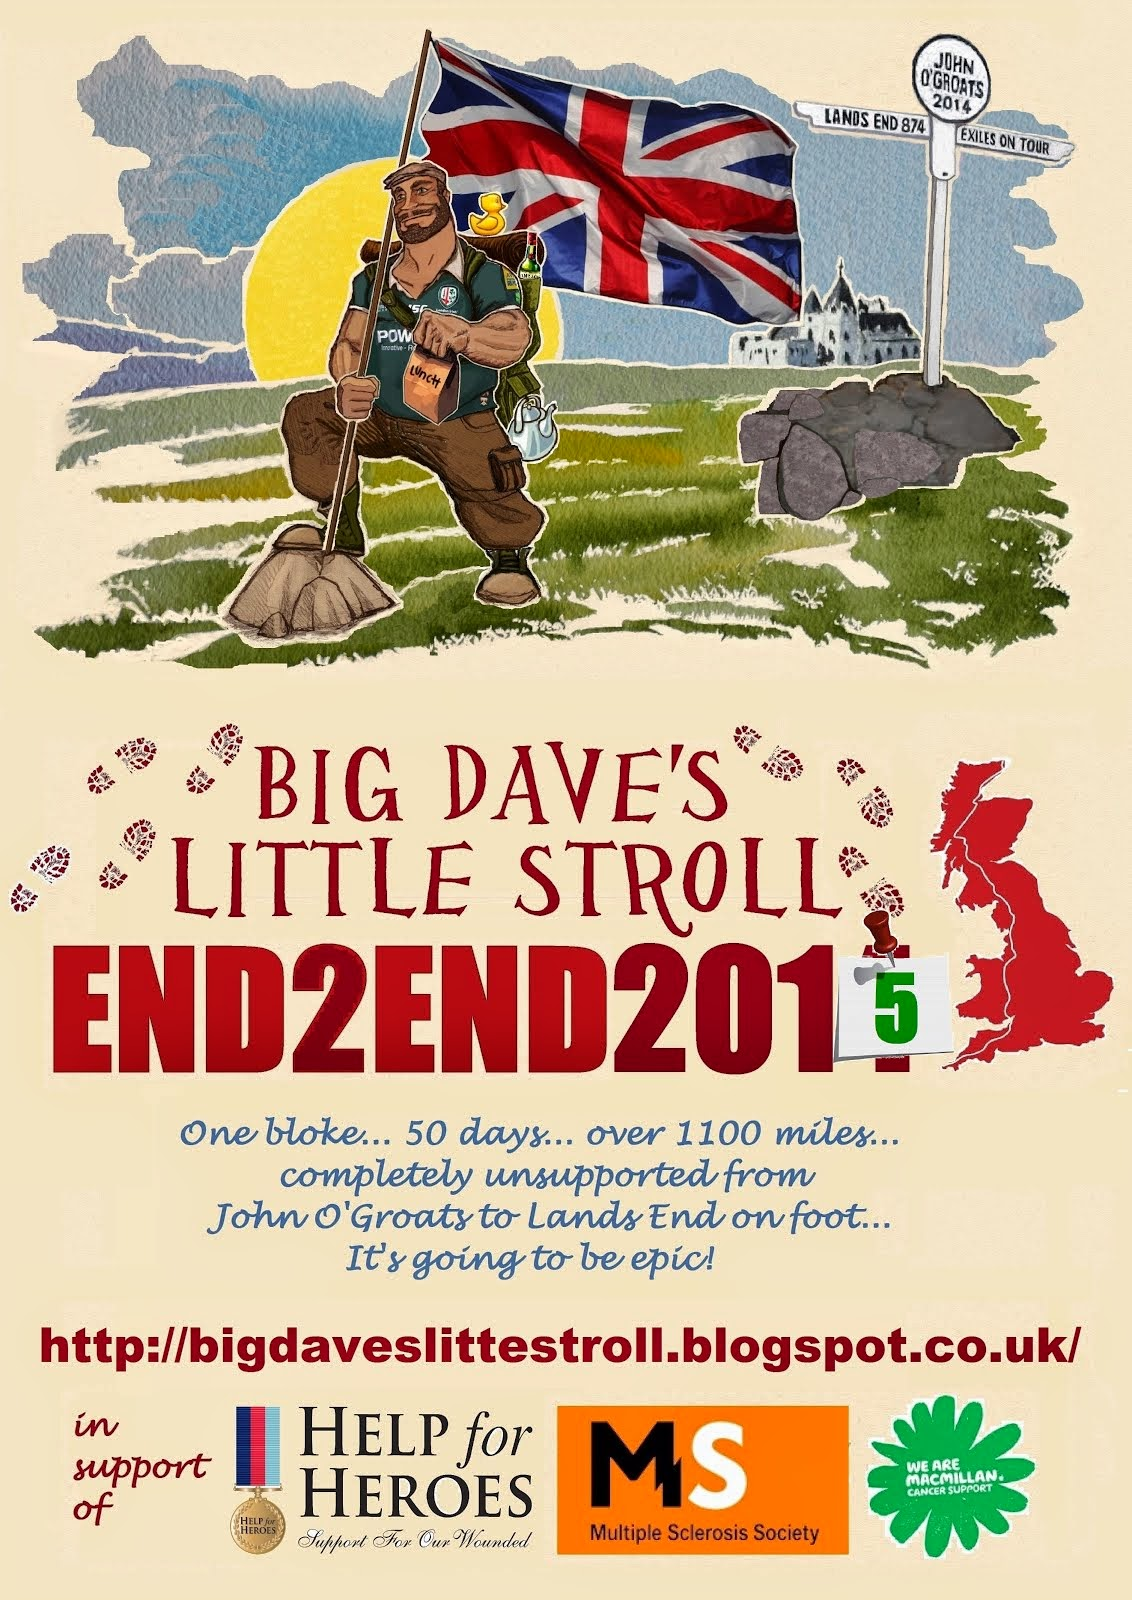 Big Dave's Little Stroll - End 2 End 2015